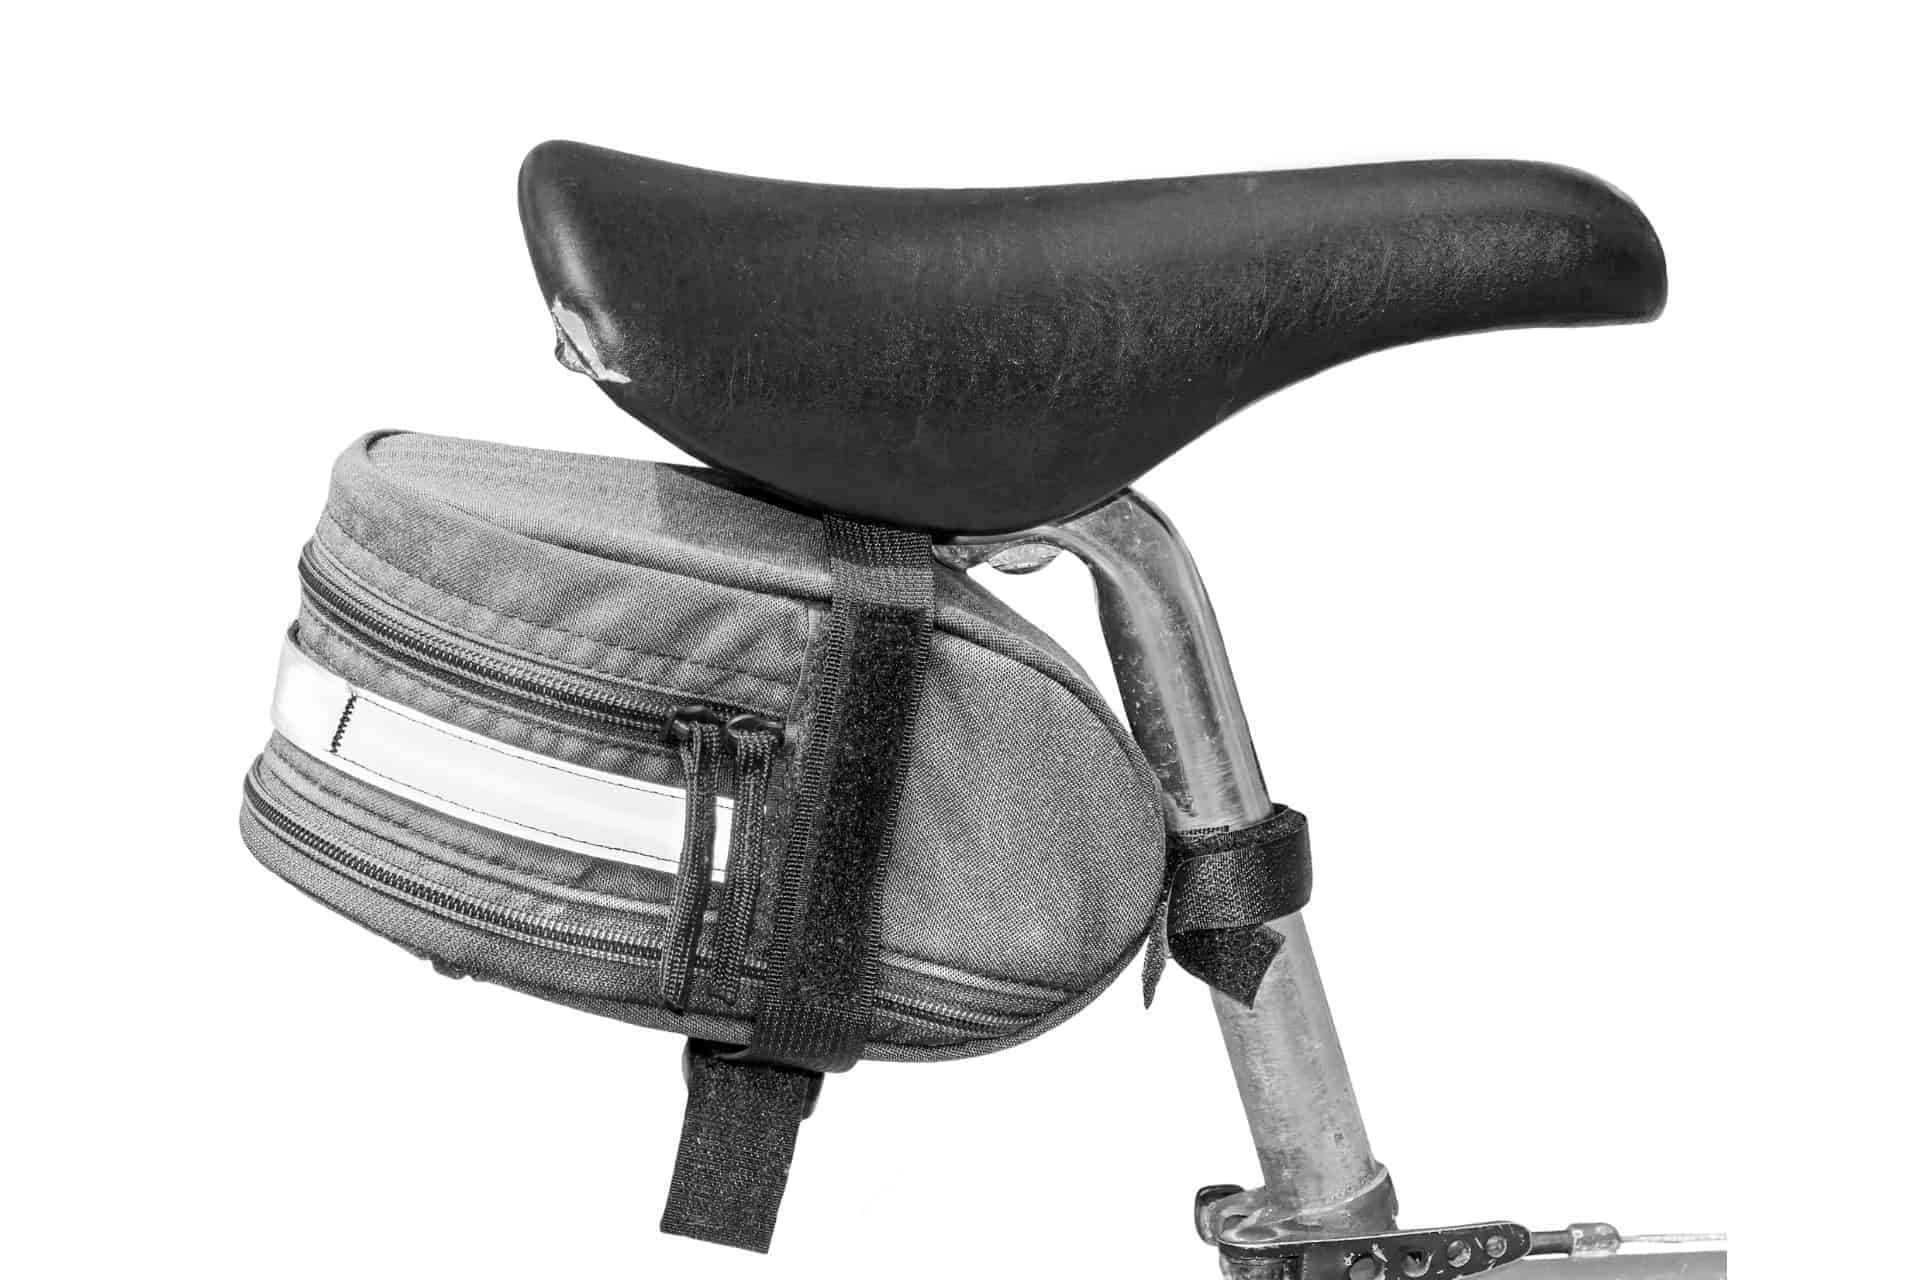 Photo showing a saddle bag on the seat post of a road bike.